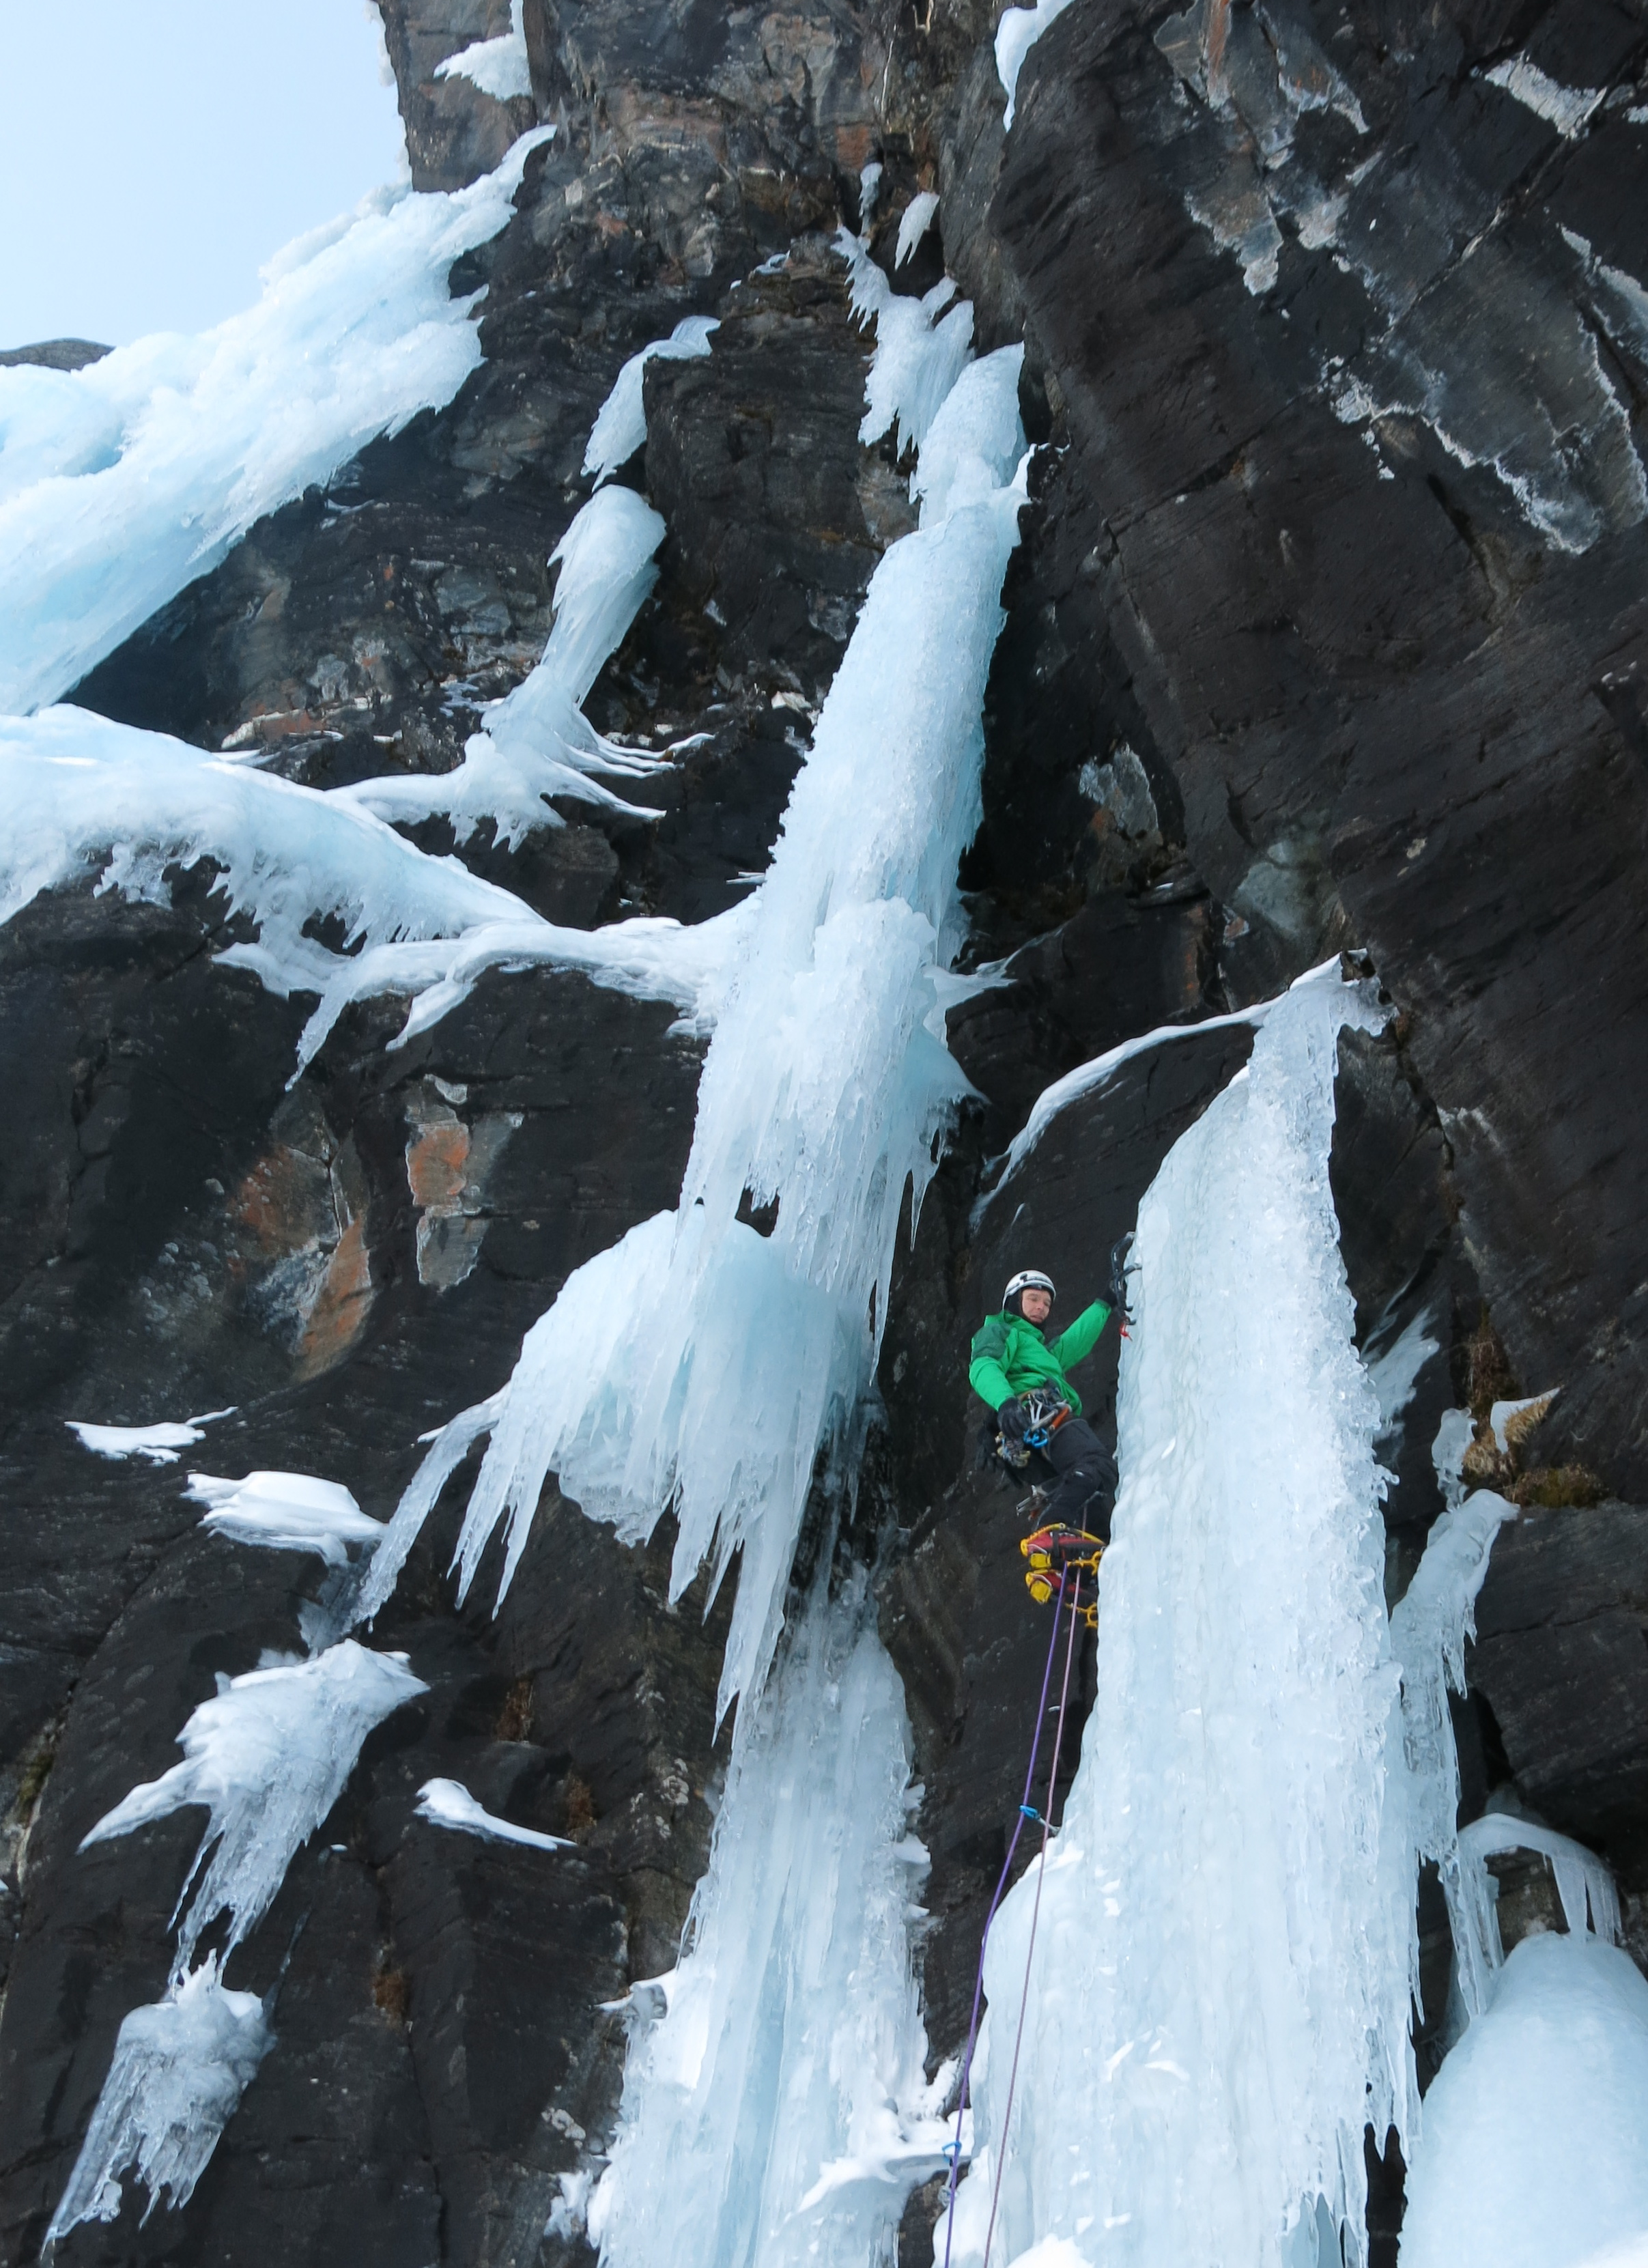 Mark Garthwaite on the first pitch of Spitfire WI 5+ during the possible first ascent in 2013.  Photo: Gresham collection